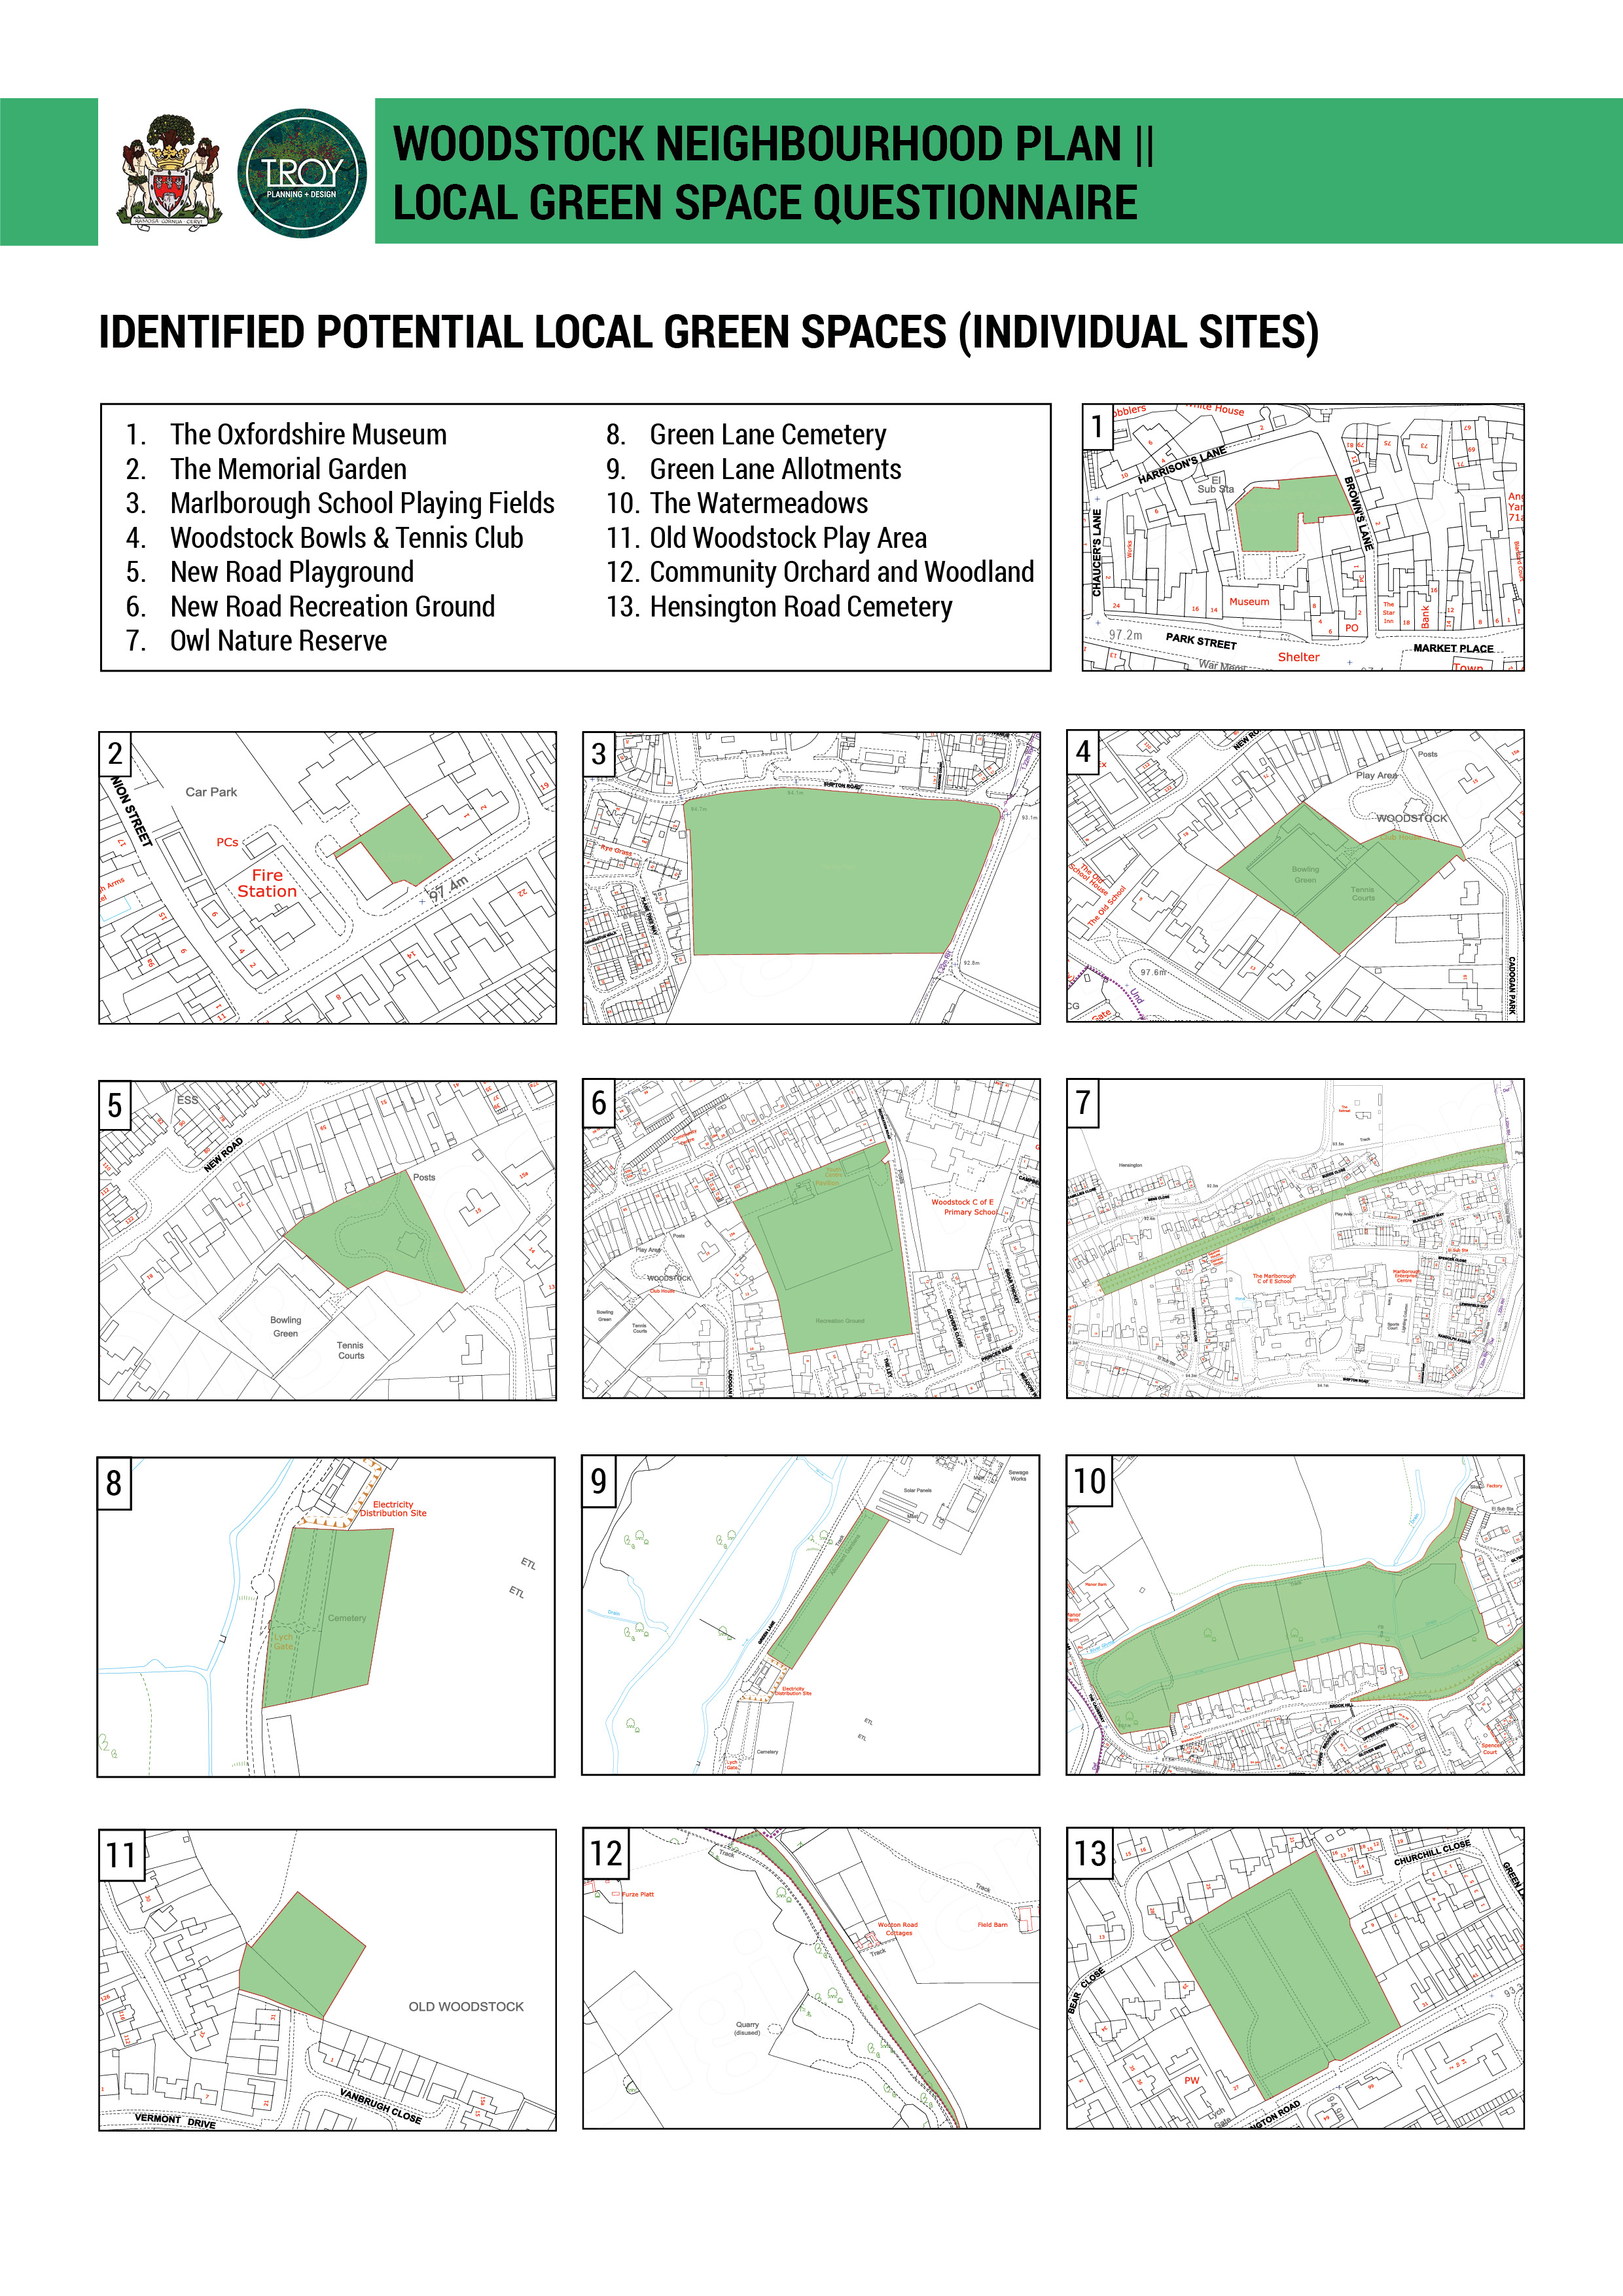 Identified Potential Local Green Spaces (Individual Sites)